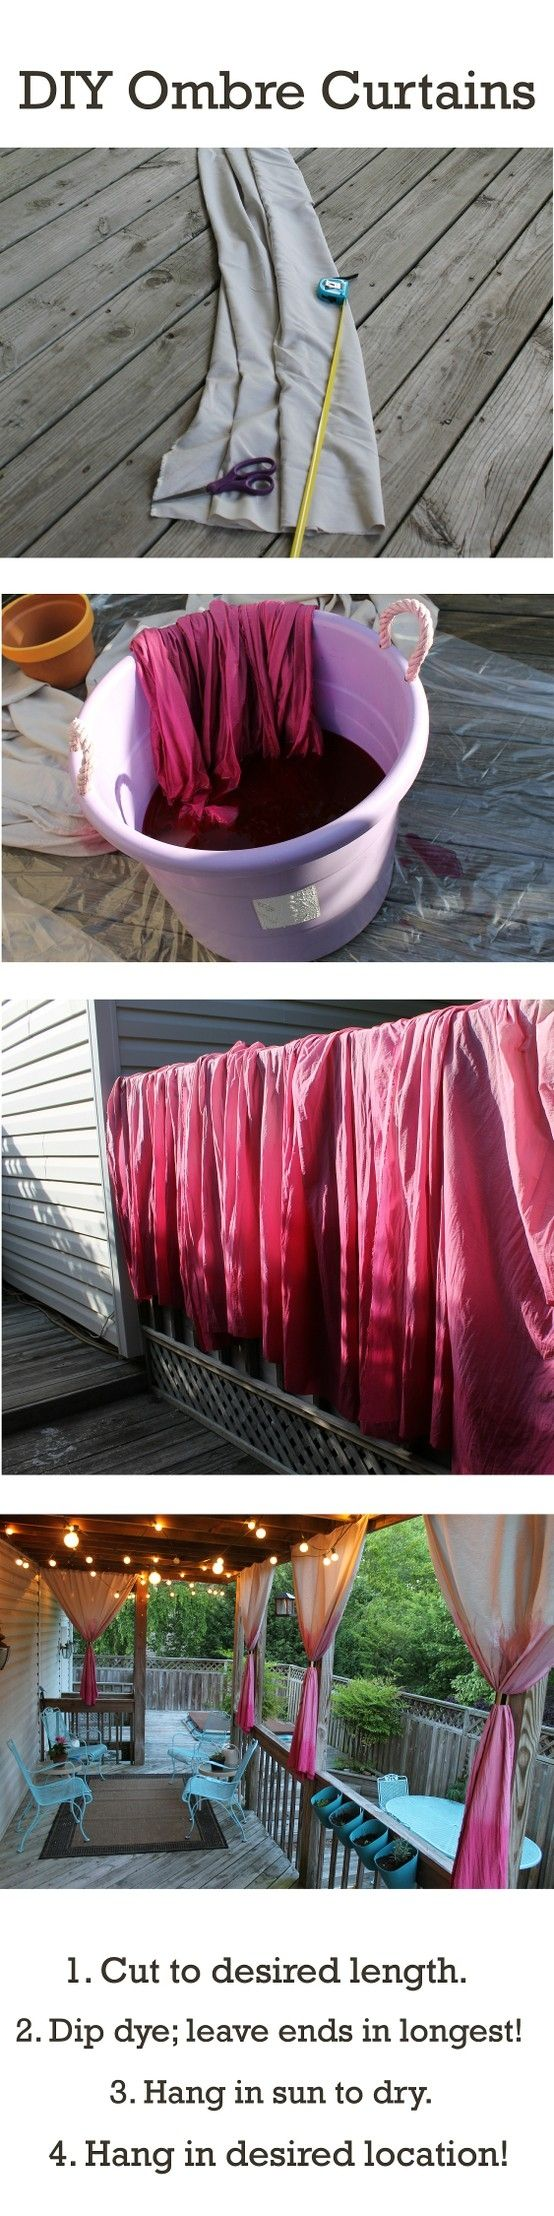 DIY Ombre curtains by ingrid.  I'm pinning because I love the curtains in this outdoor space